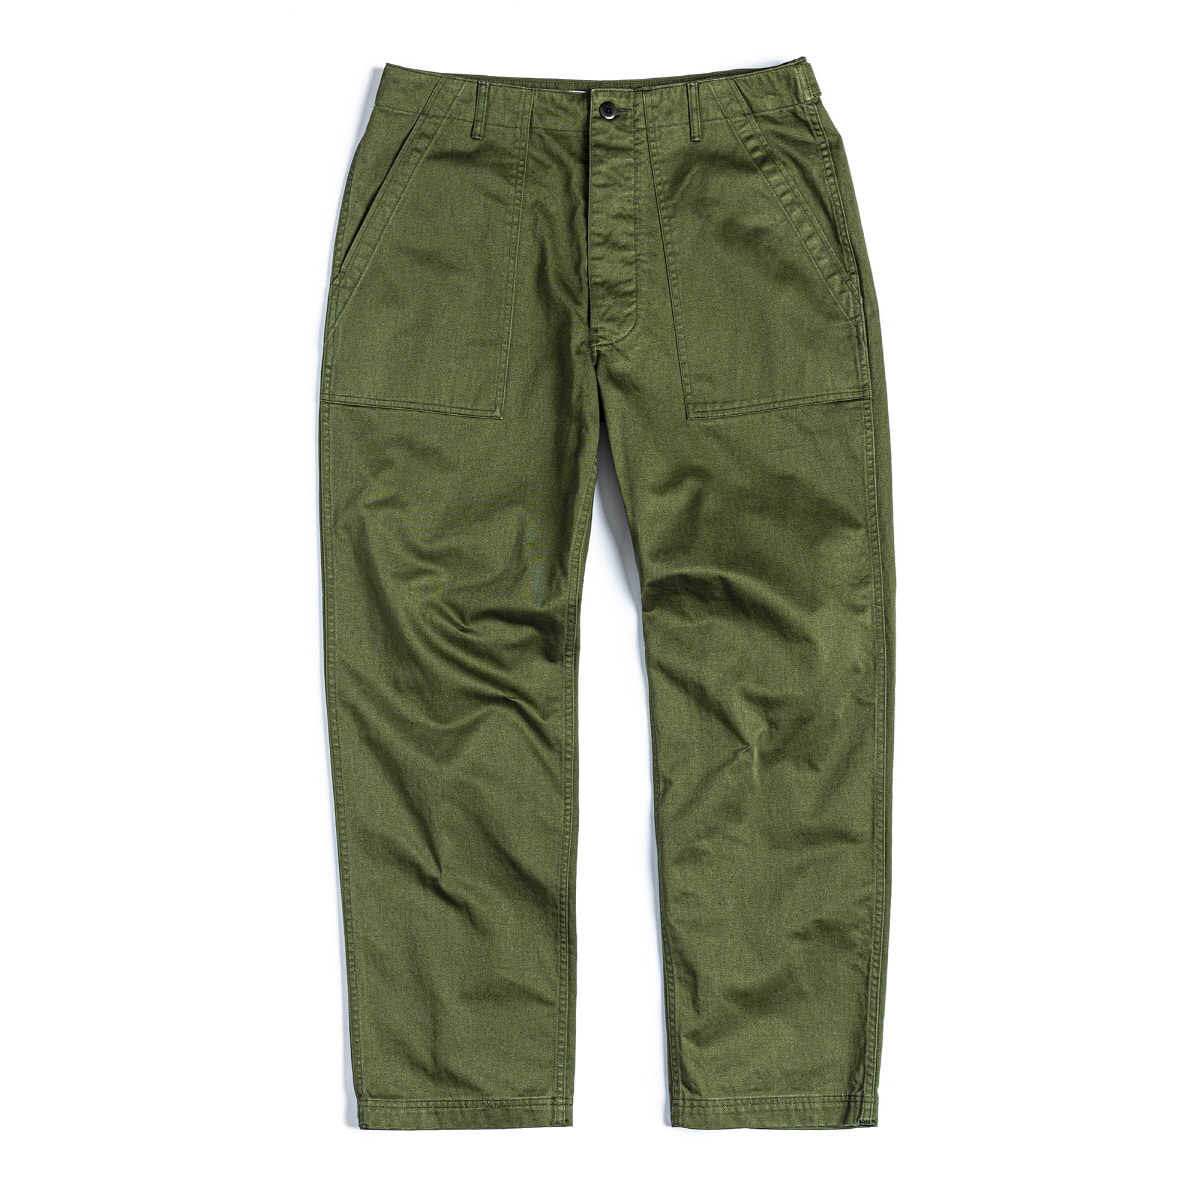 FATIGUE PANTS - OLIVE BACK SATIN